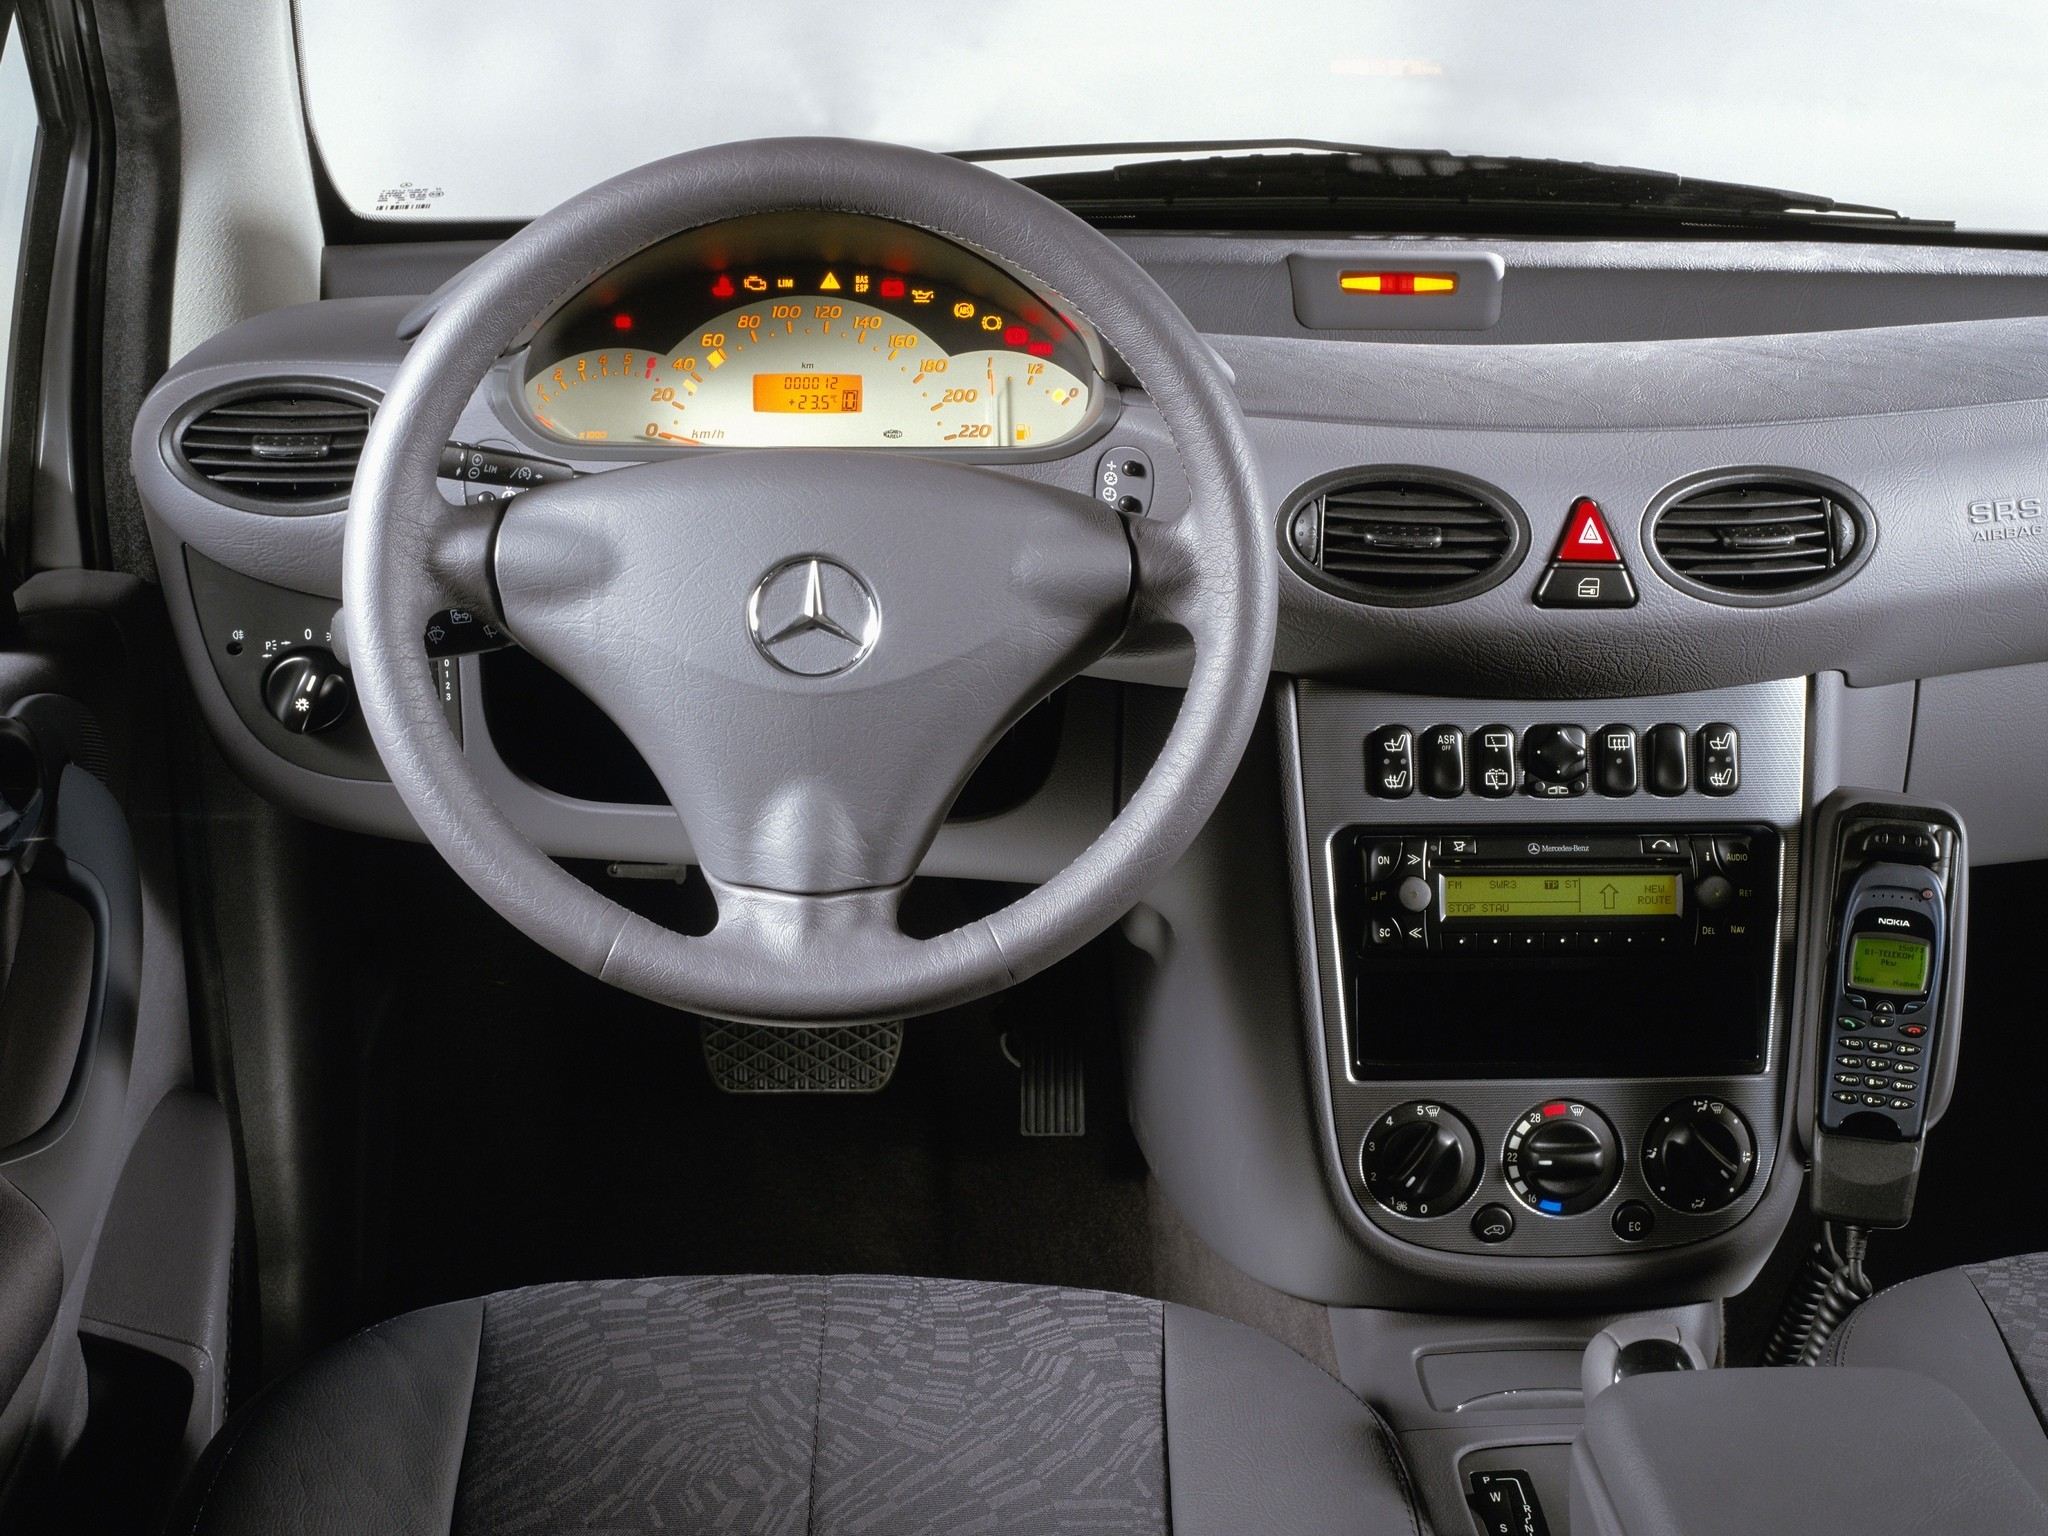 mercedes benz a klasse w168 specs 1997 1998 1999 2000 2001 autoevolution. Black Bedroom Furniture Sets. Home Design Ideas